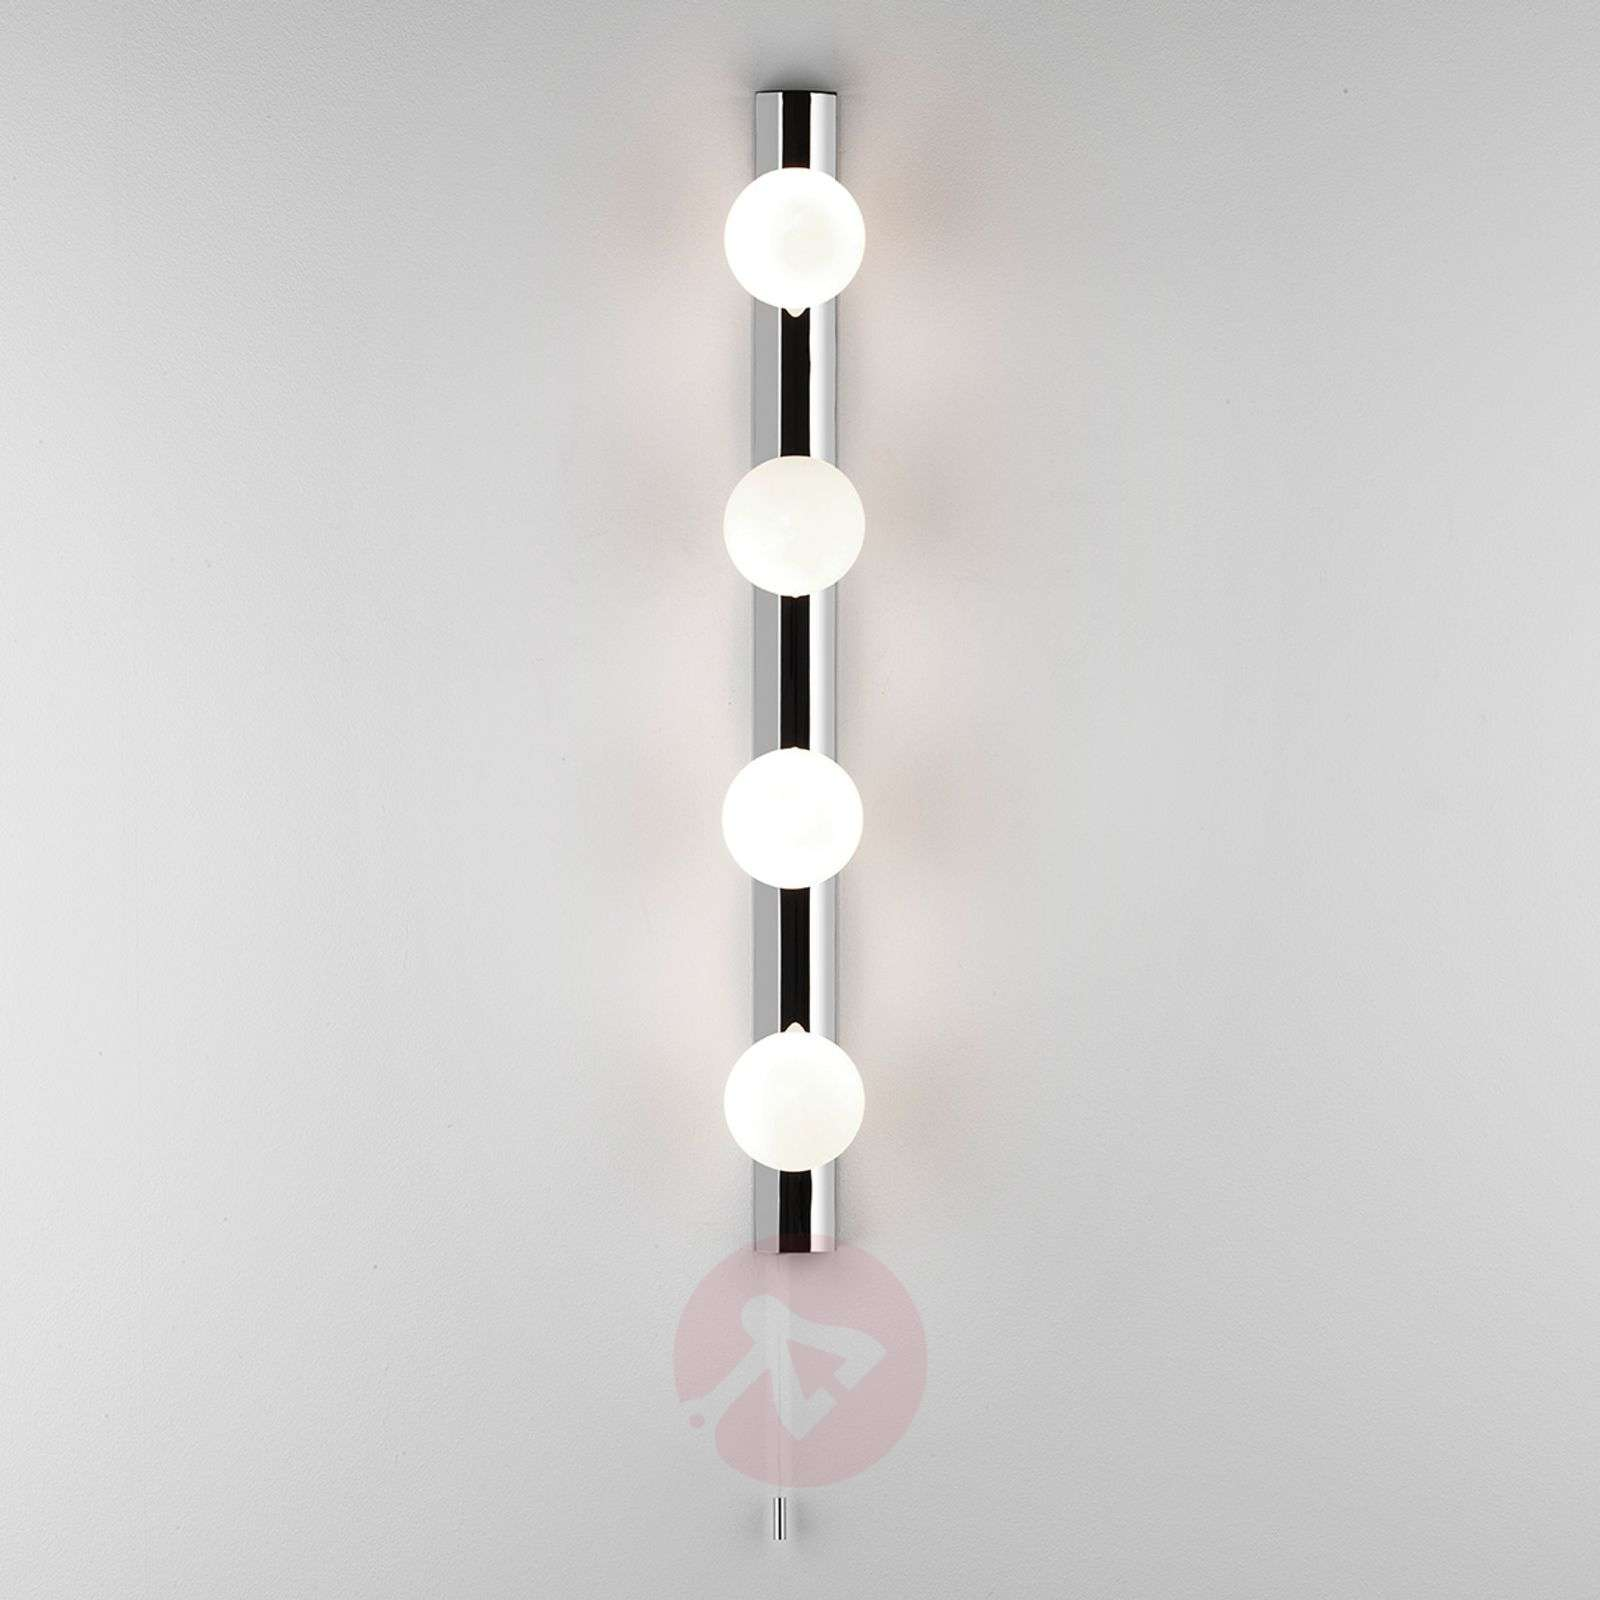 Cabaret Wall Light Attractive with Pull Switch-1020033-02